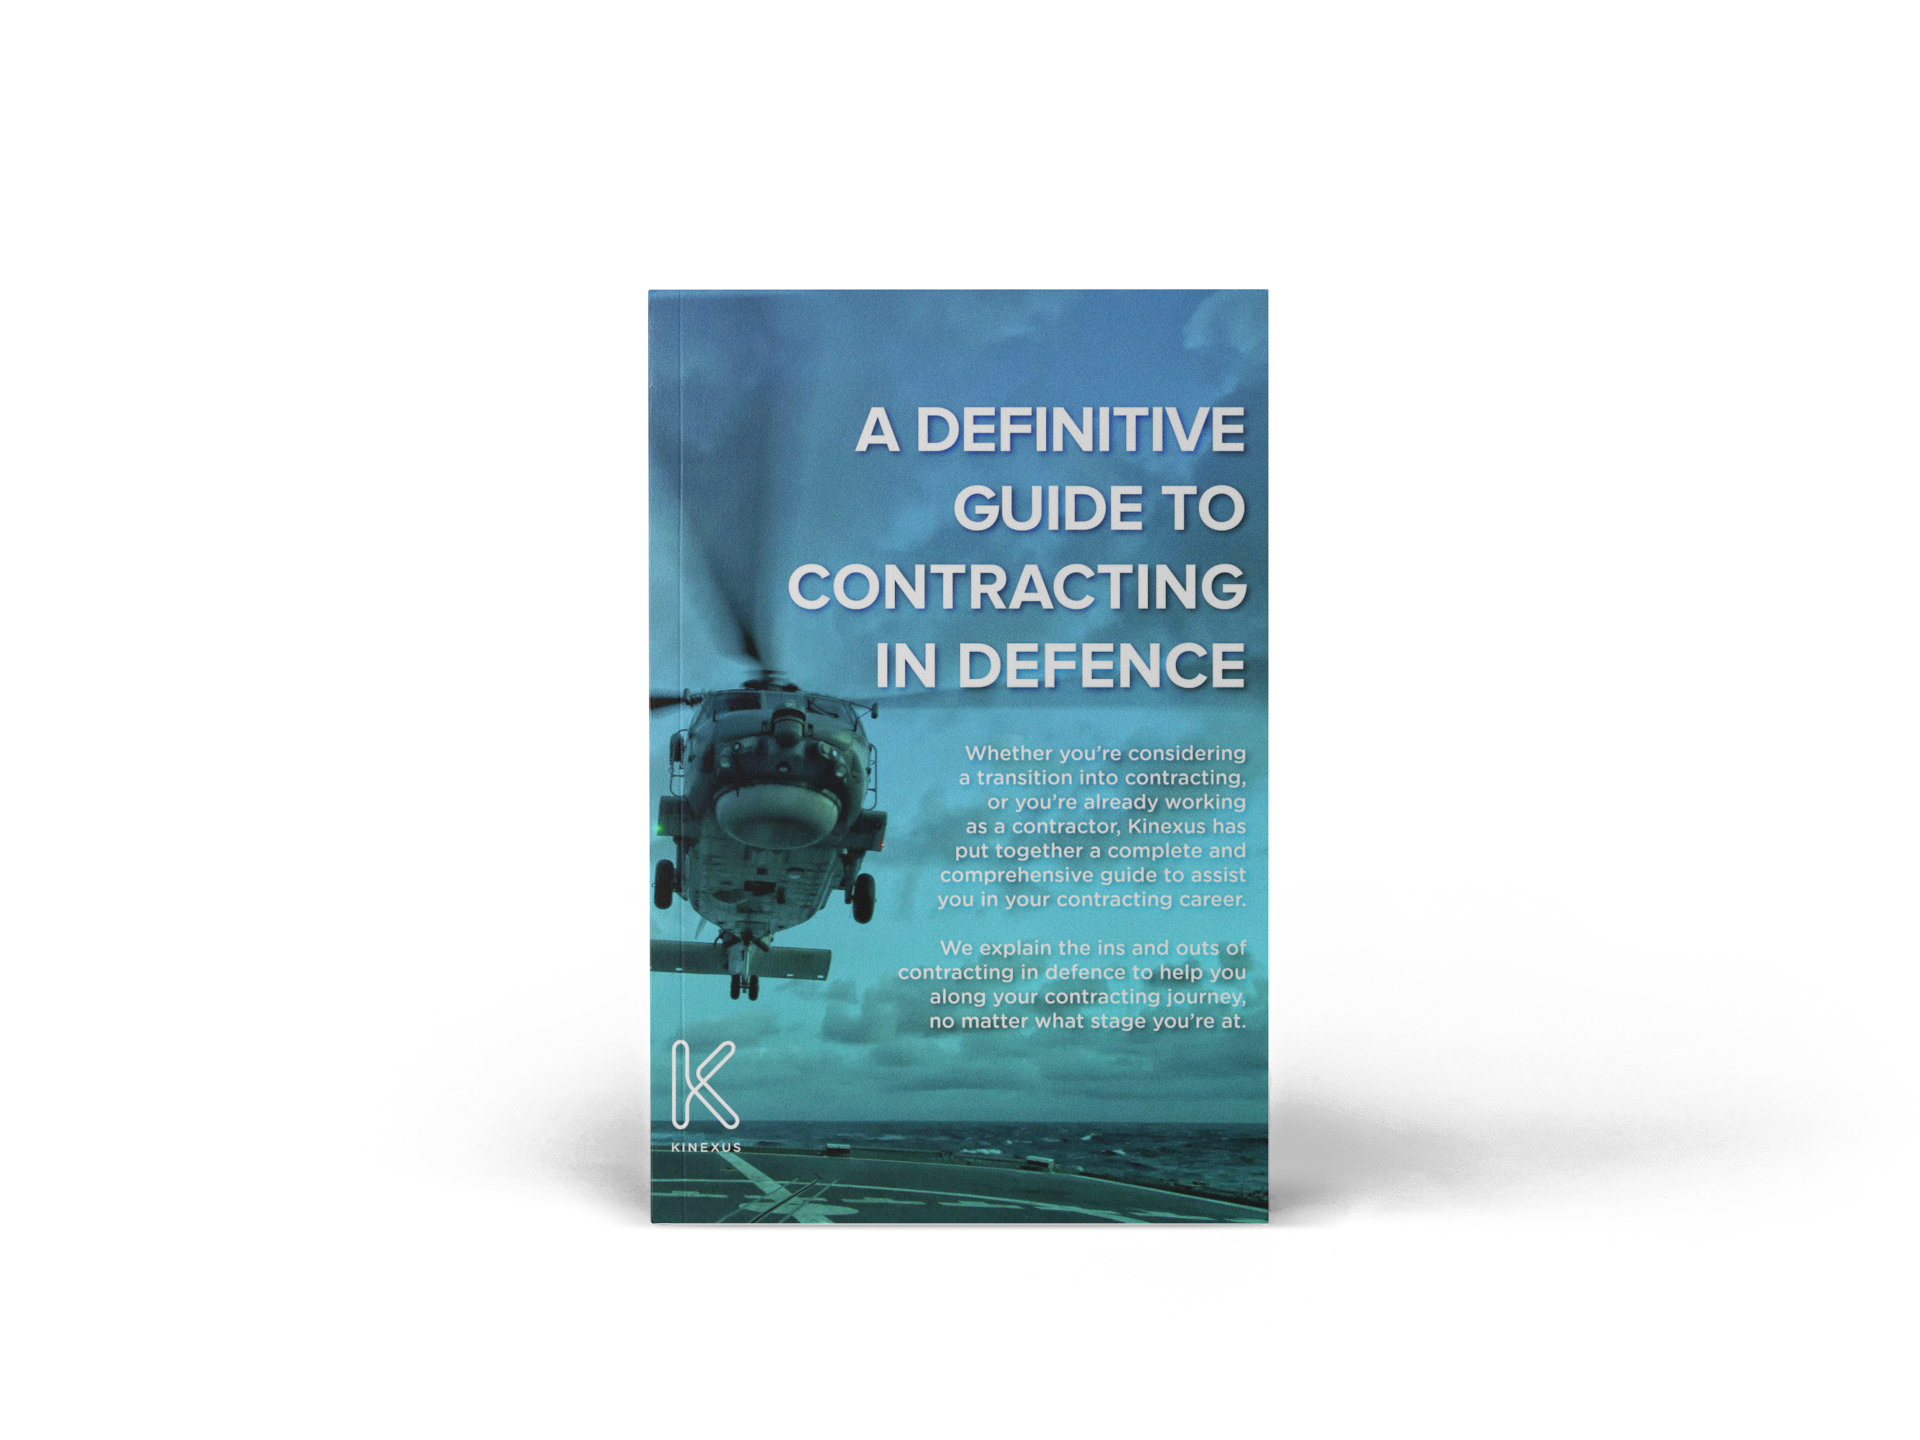 A Definitive Guide to Contracting in Defence